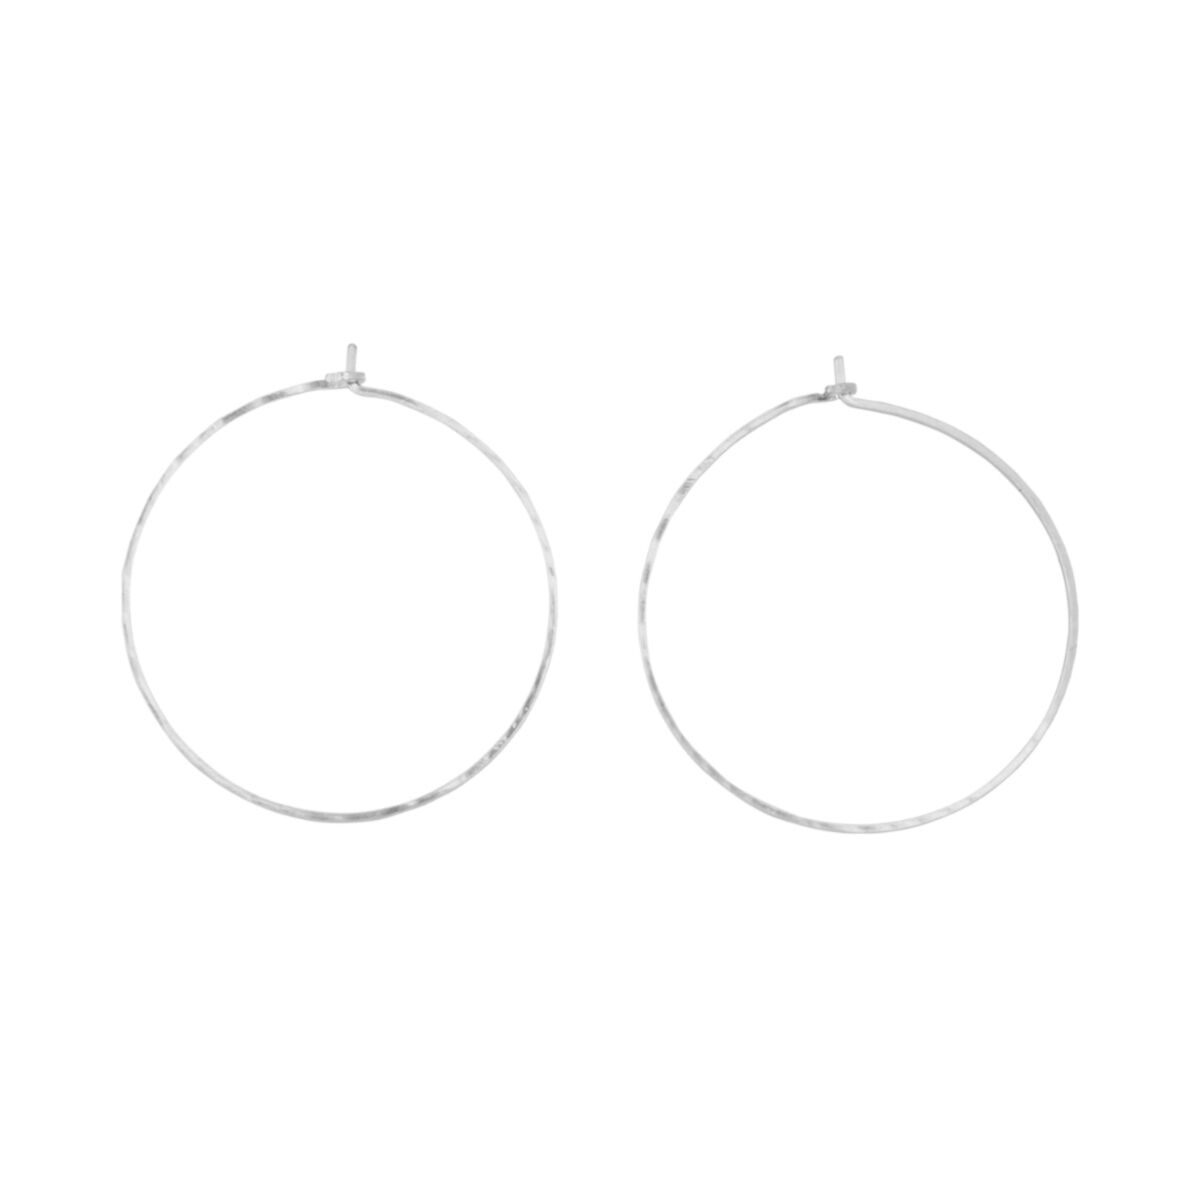 Big Hoop Dream Earrings, Silver image